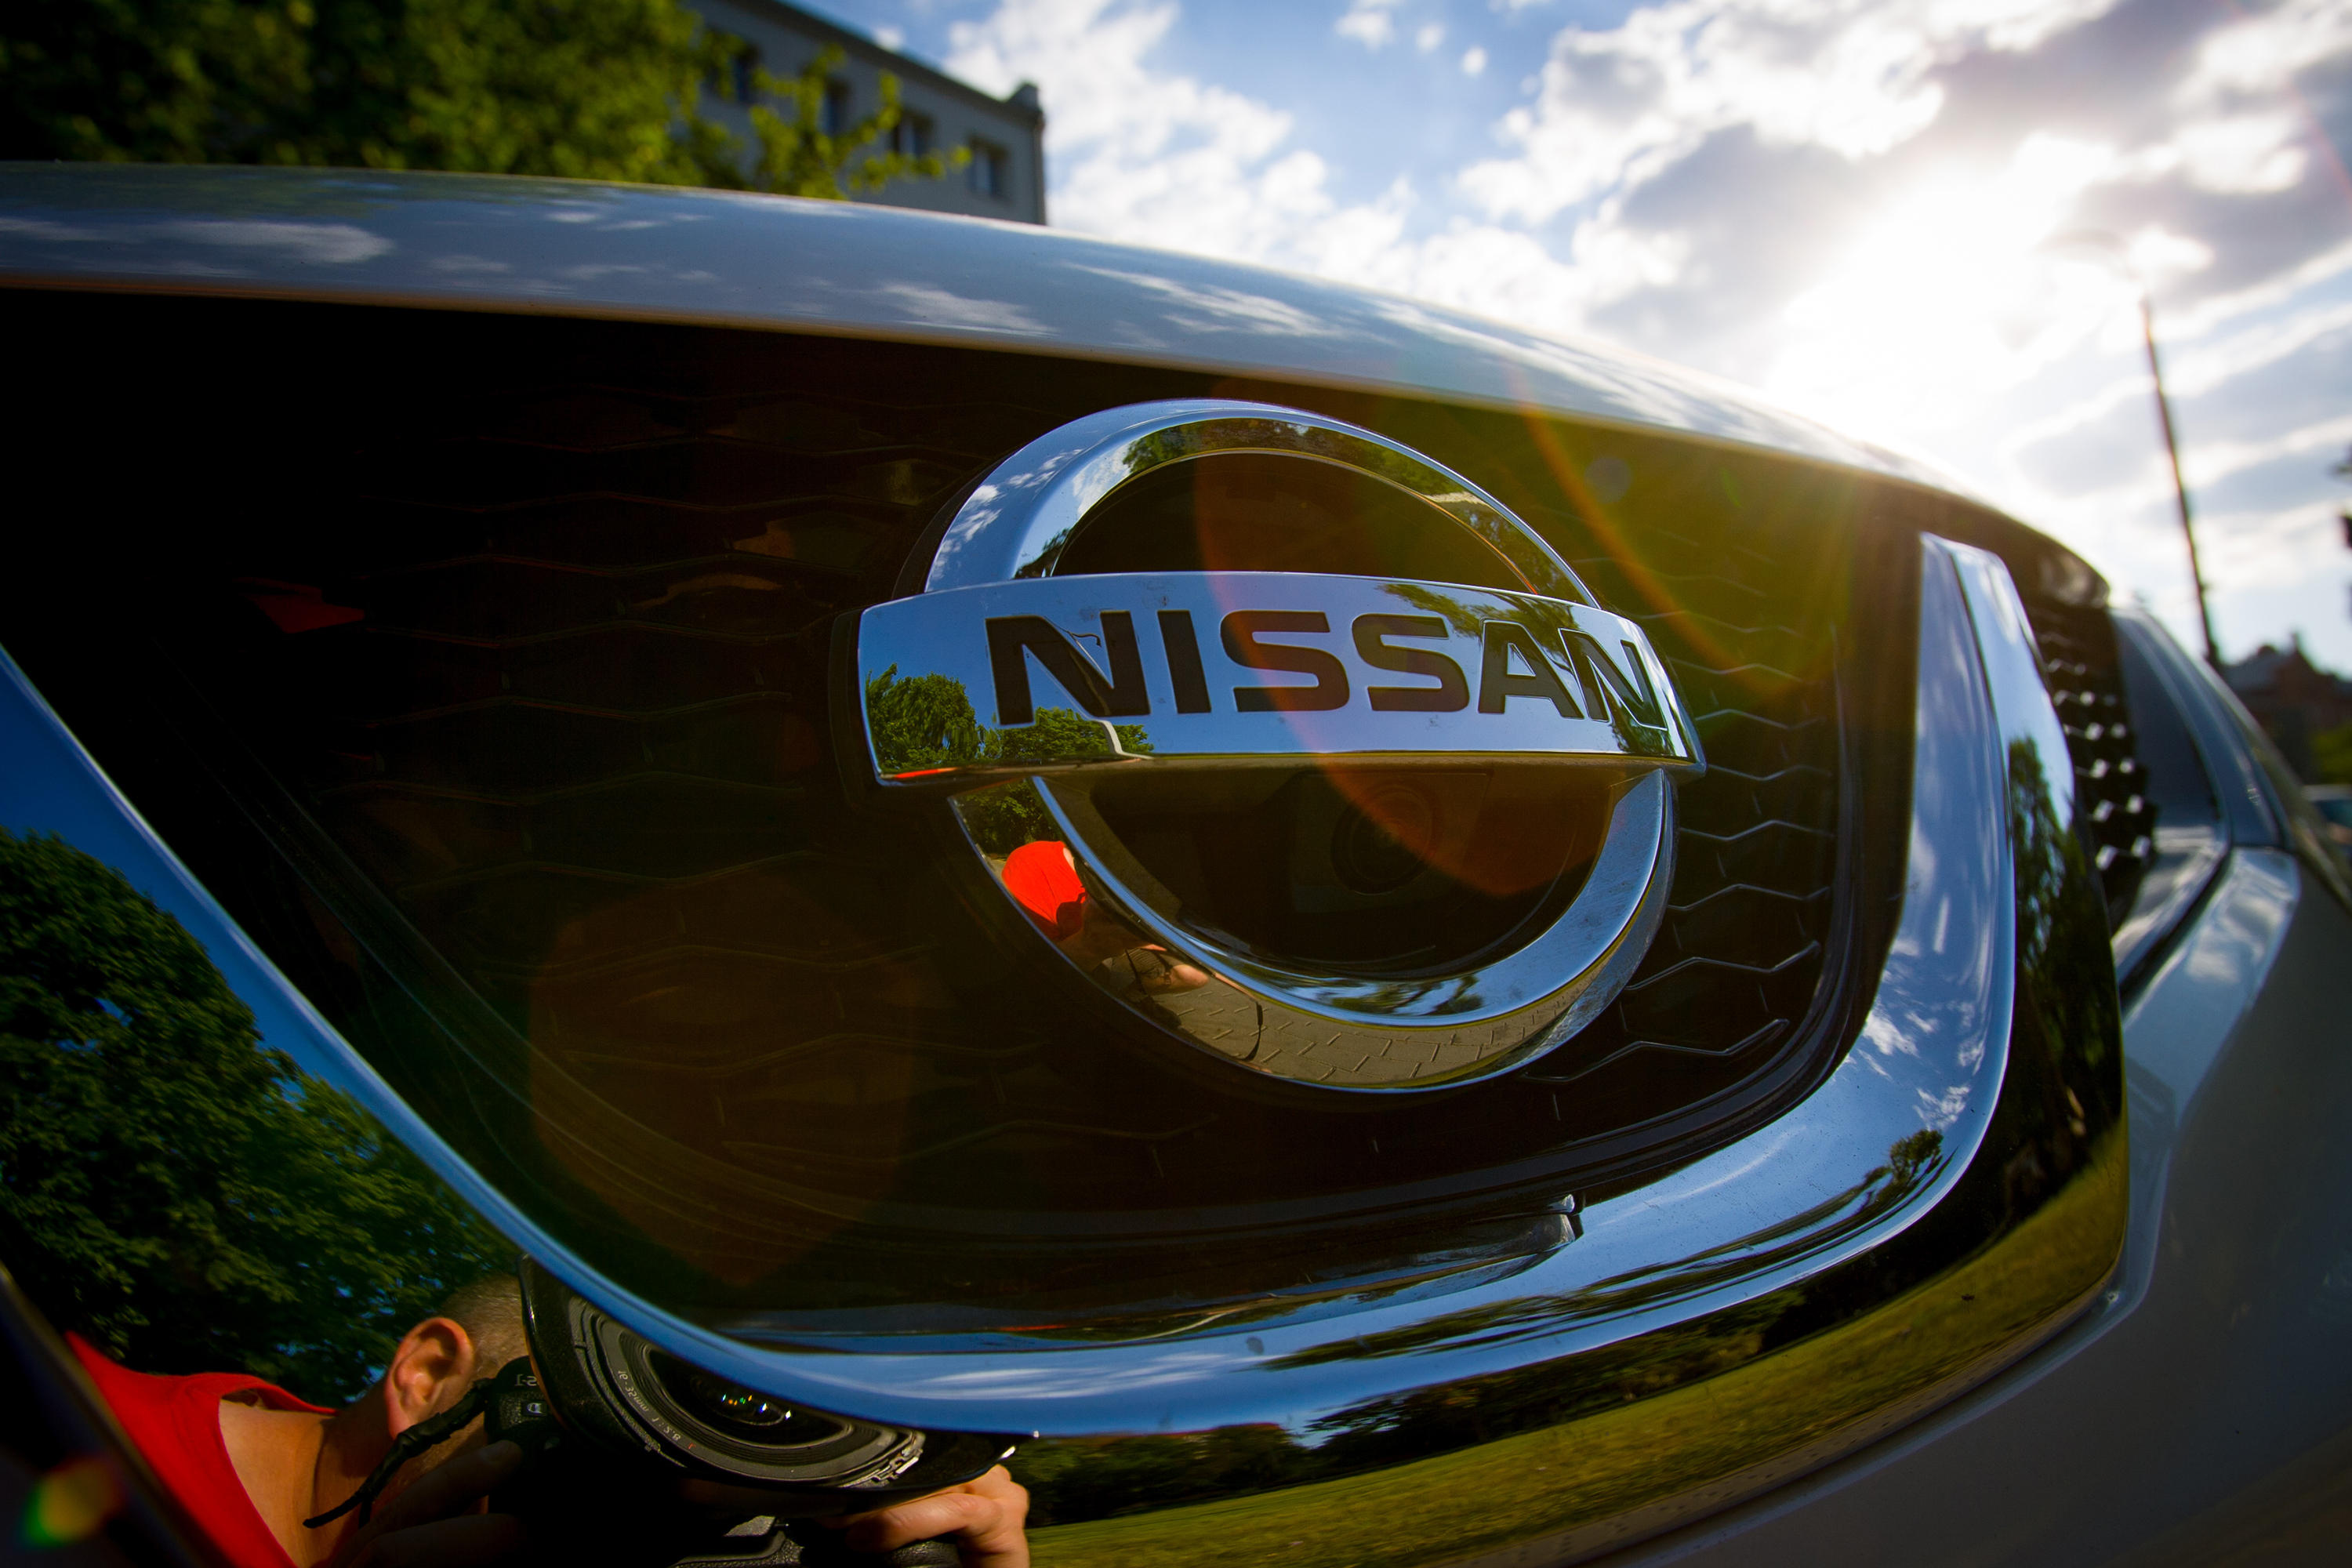 Nissan replaces top positions at rival Mitsubishi